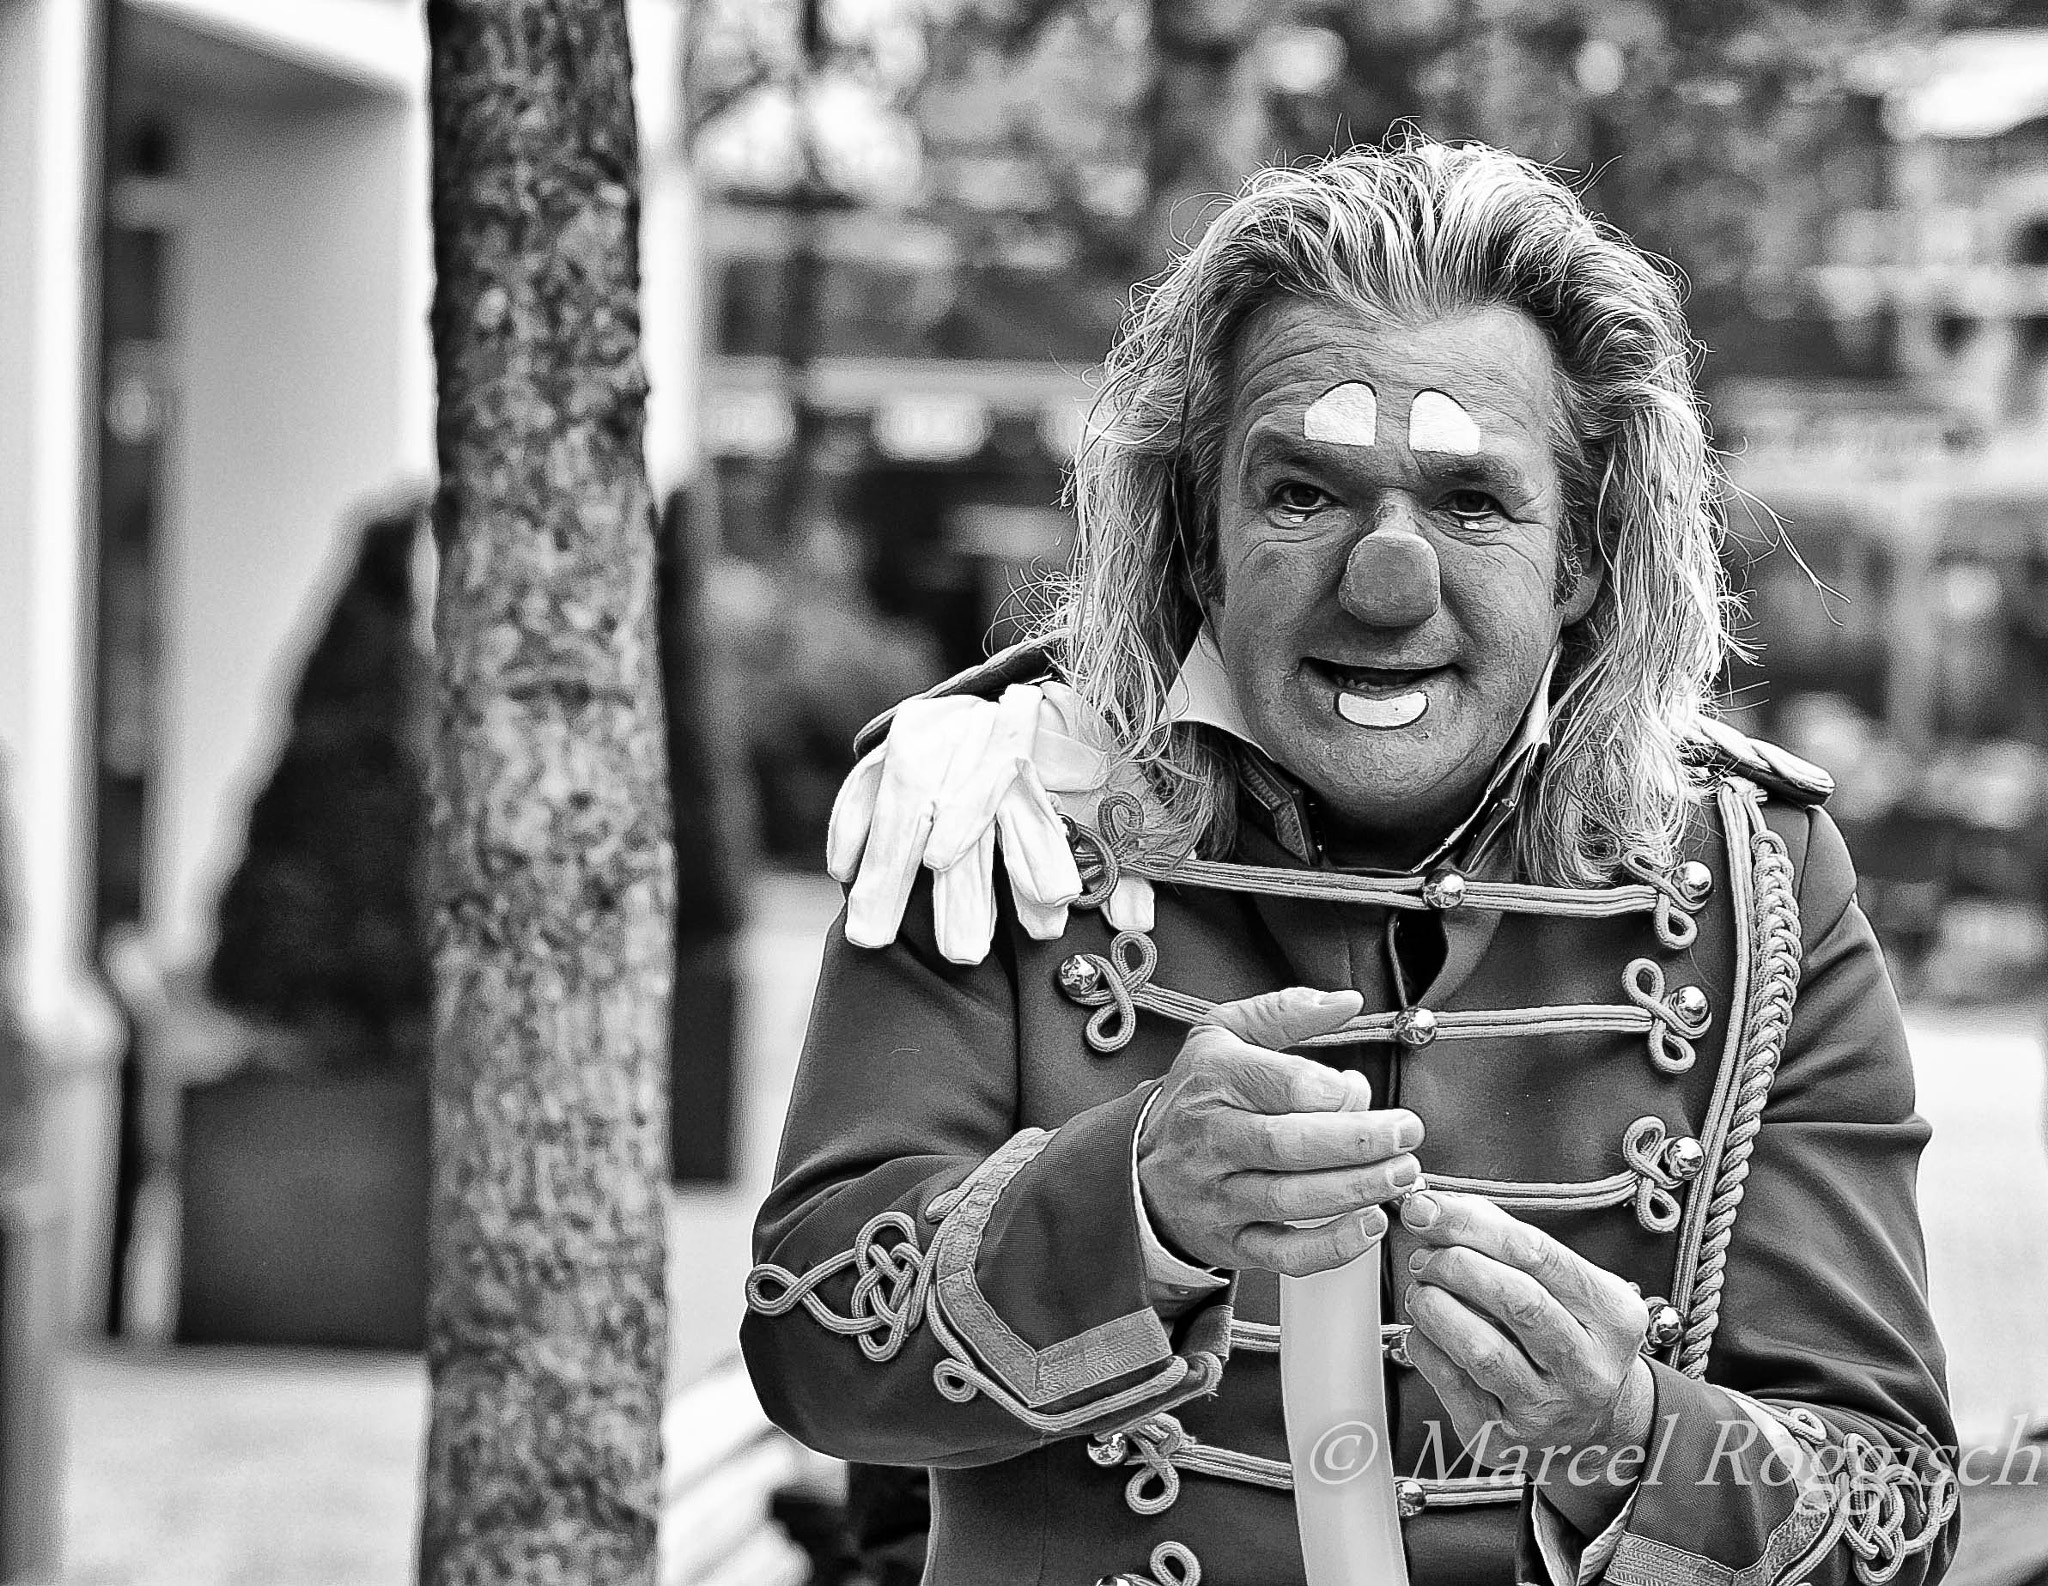 Photograph The Clown by Marcel  Roggisch on 500px